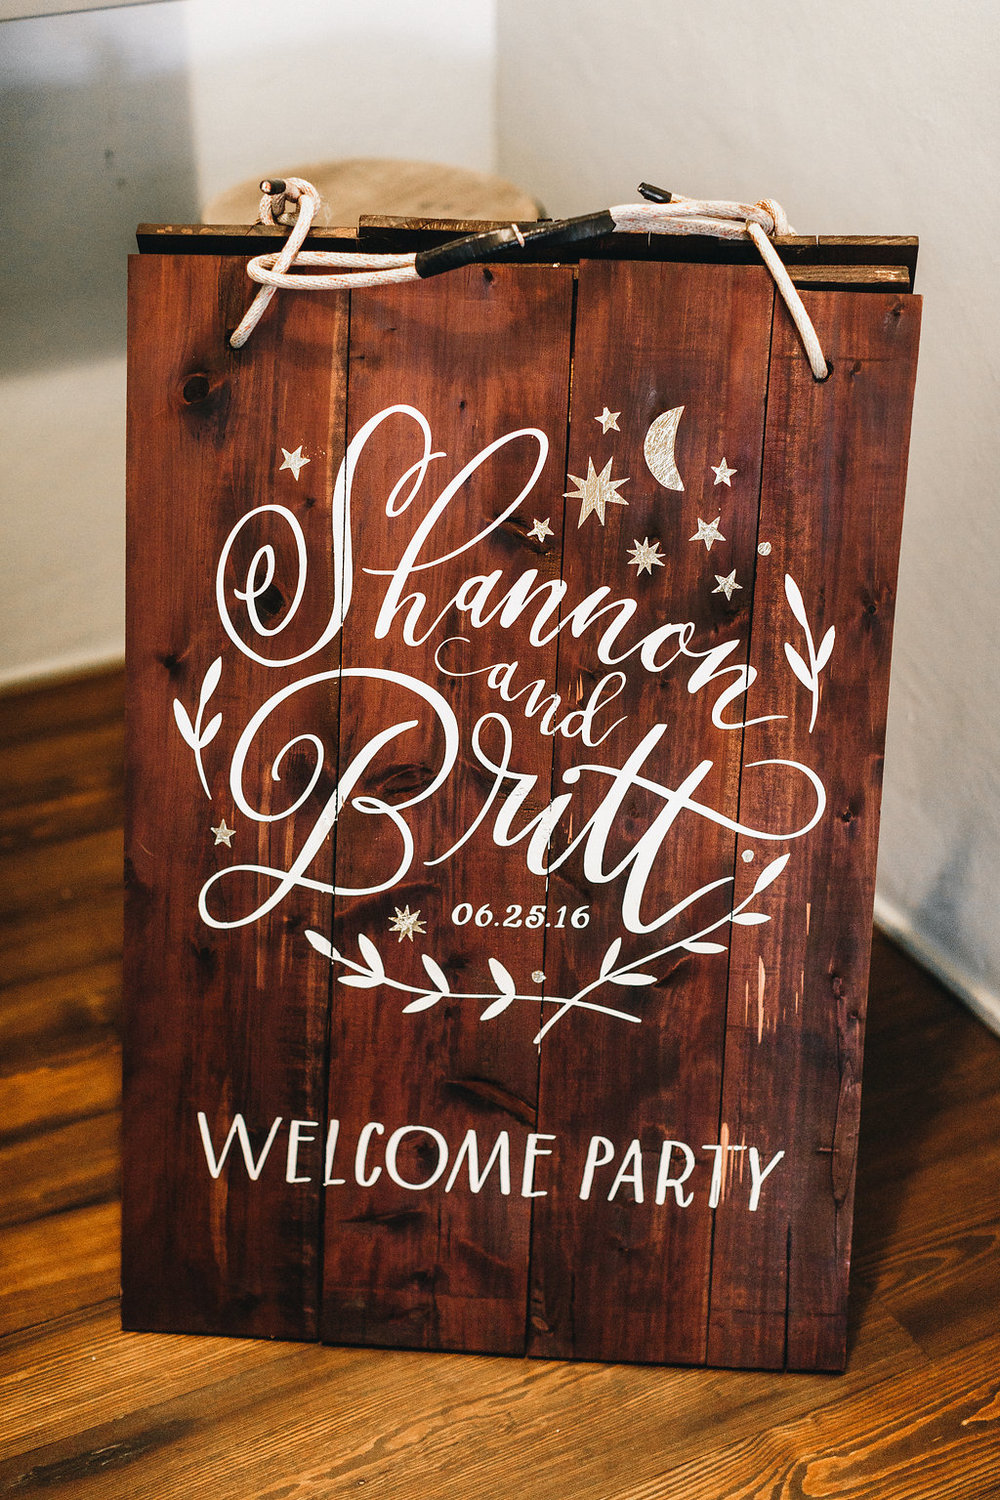 shannon-britt-the-florence-rehearsal-dinner-welcome-party-savannah-weddings-savannah-wedding-planner-savannah-florist-mackensey-alexander-photography-savannah-bridal-boutique-ivoru-and-beau-bridal-boutique-soutuern-wedding-boho-wedding-1.jpg